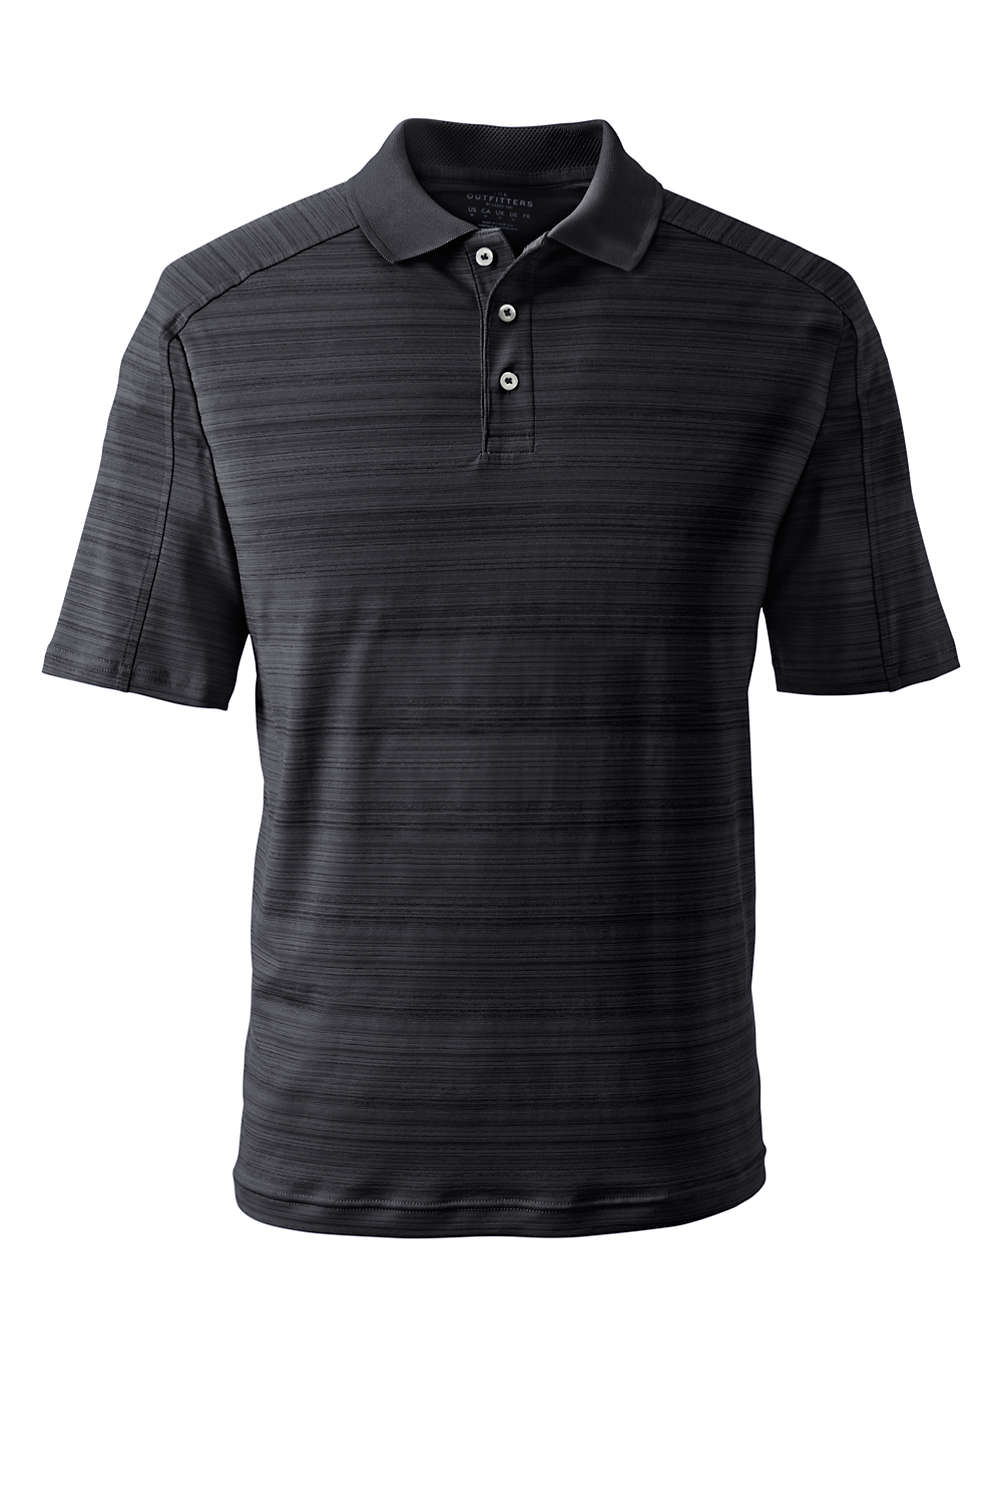 1ccef53d09 Men's Short Sleeve Tonal Stripe Polo from Lands' End